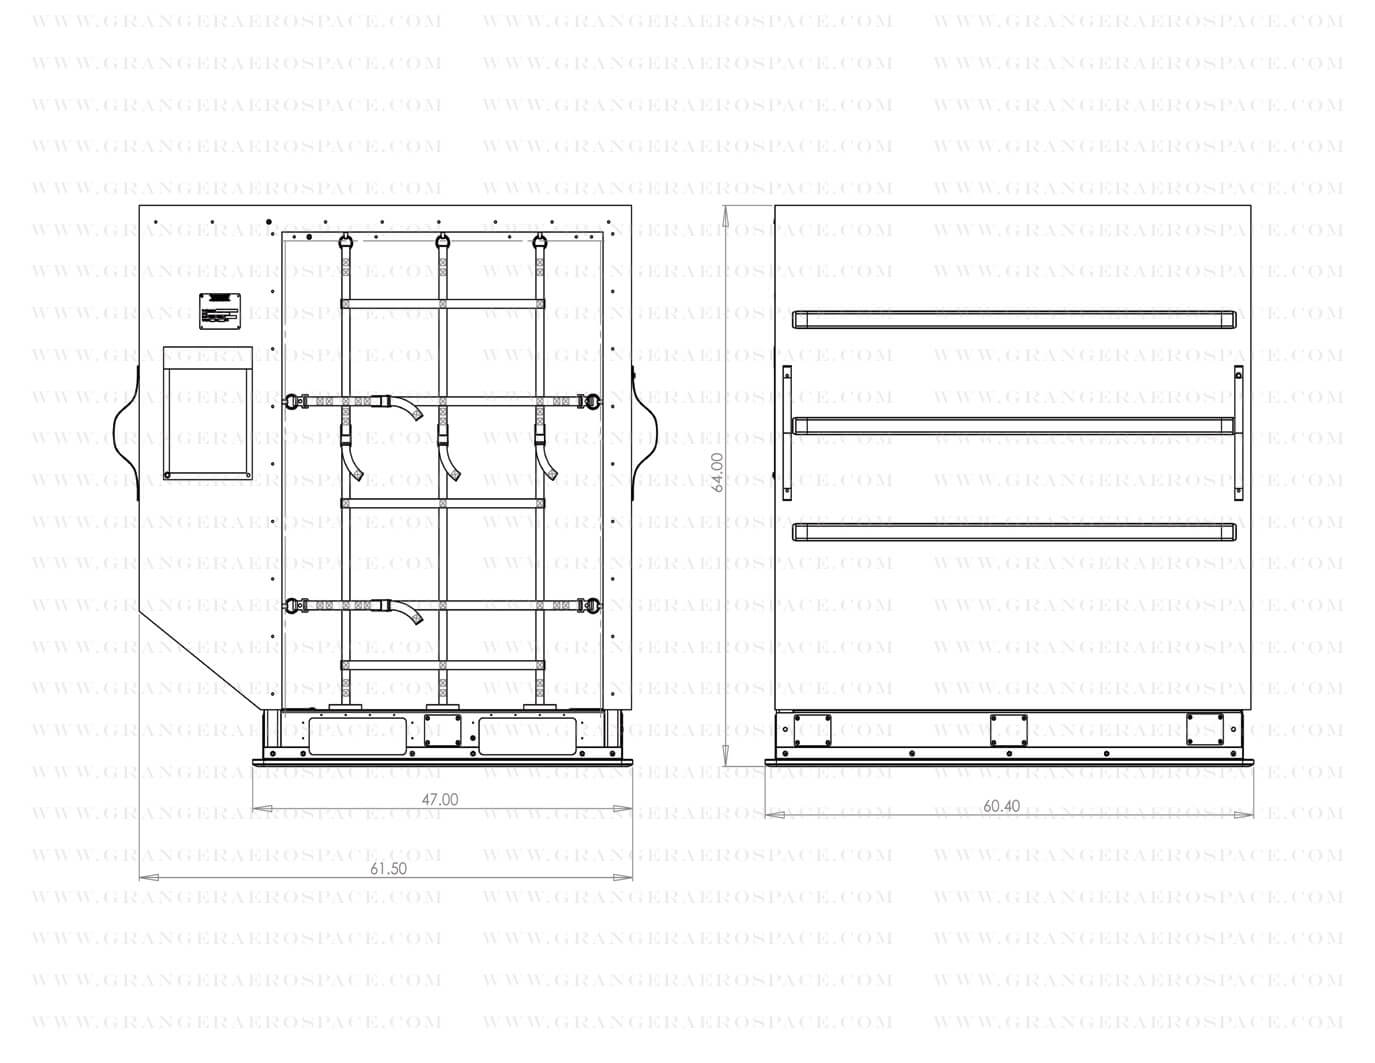 LD 2 Dimensions, LD 2 Air Cargo Container Dimensions, DPN dimensions